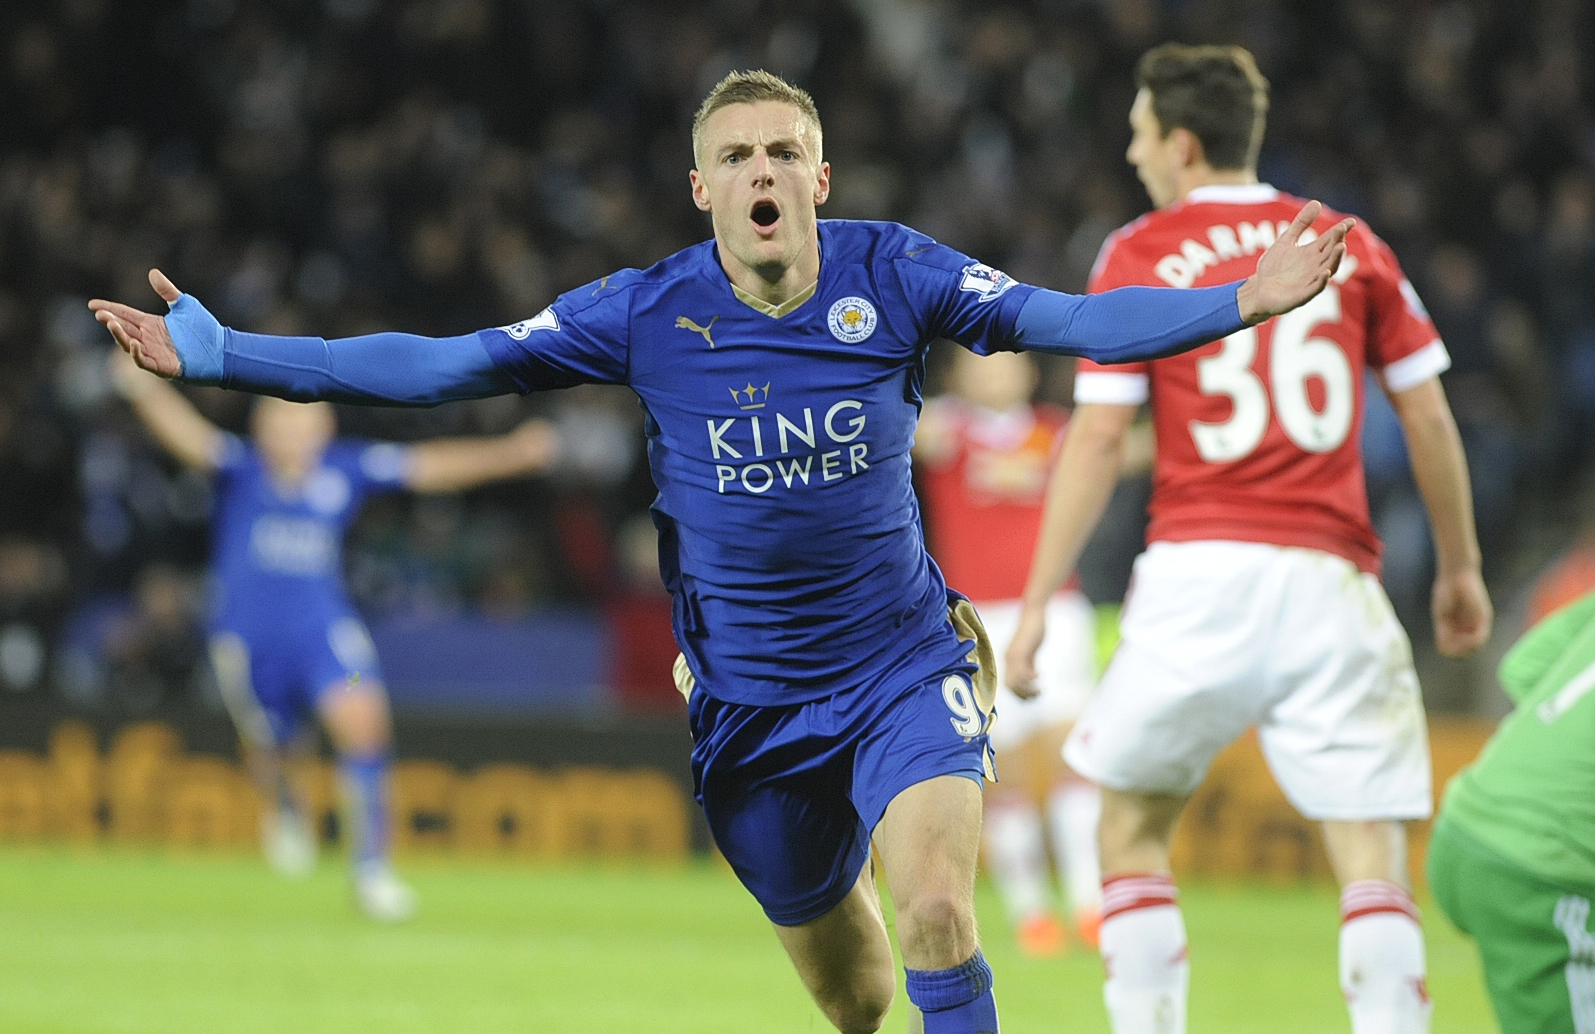 Premier League: Vardy breaks scoring record as Leicester hold Manchester United